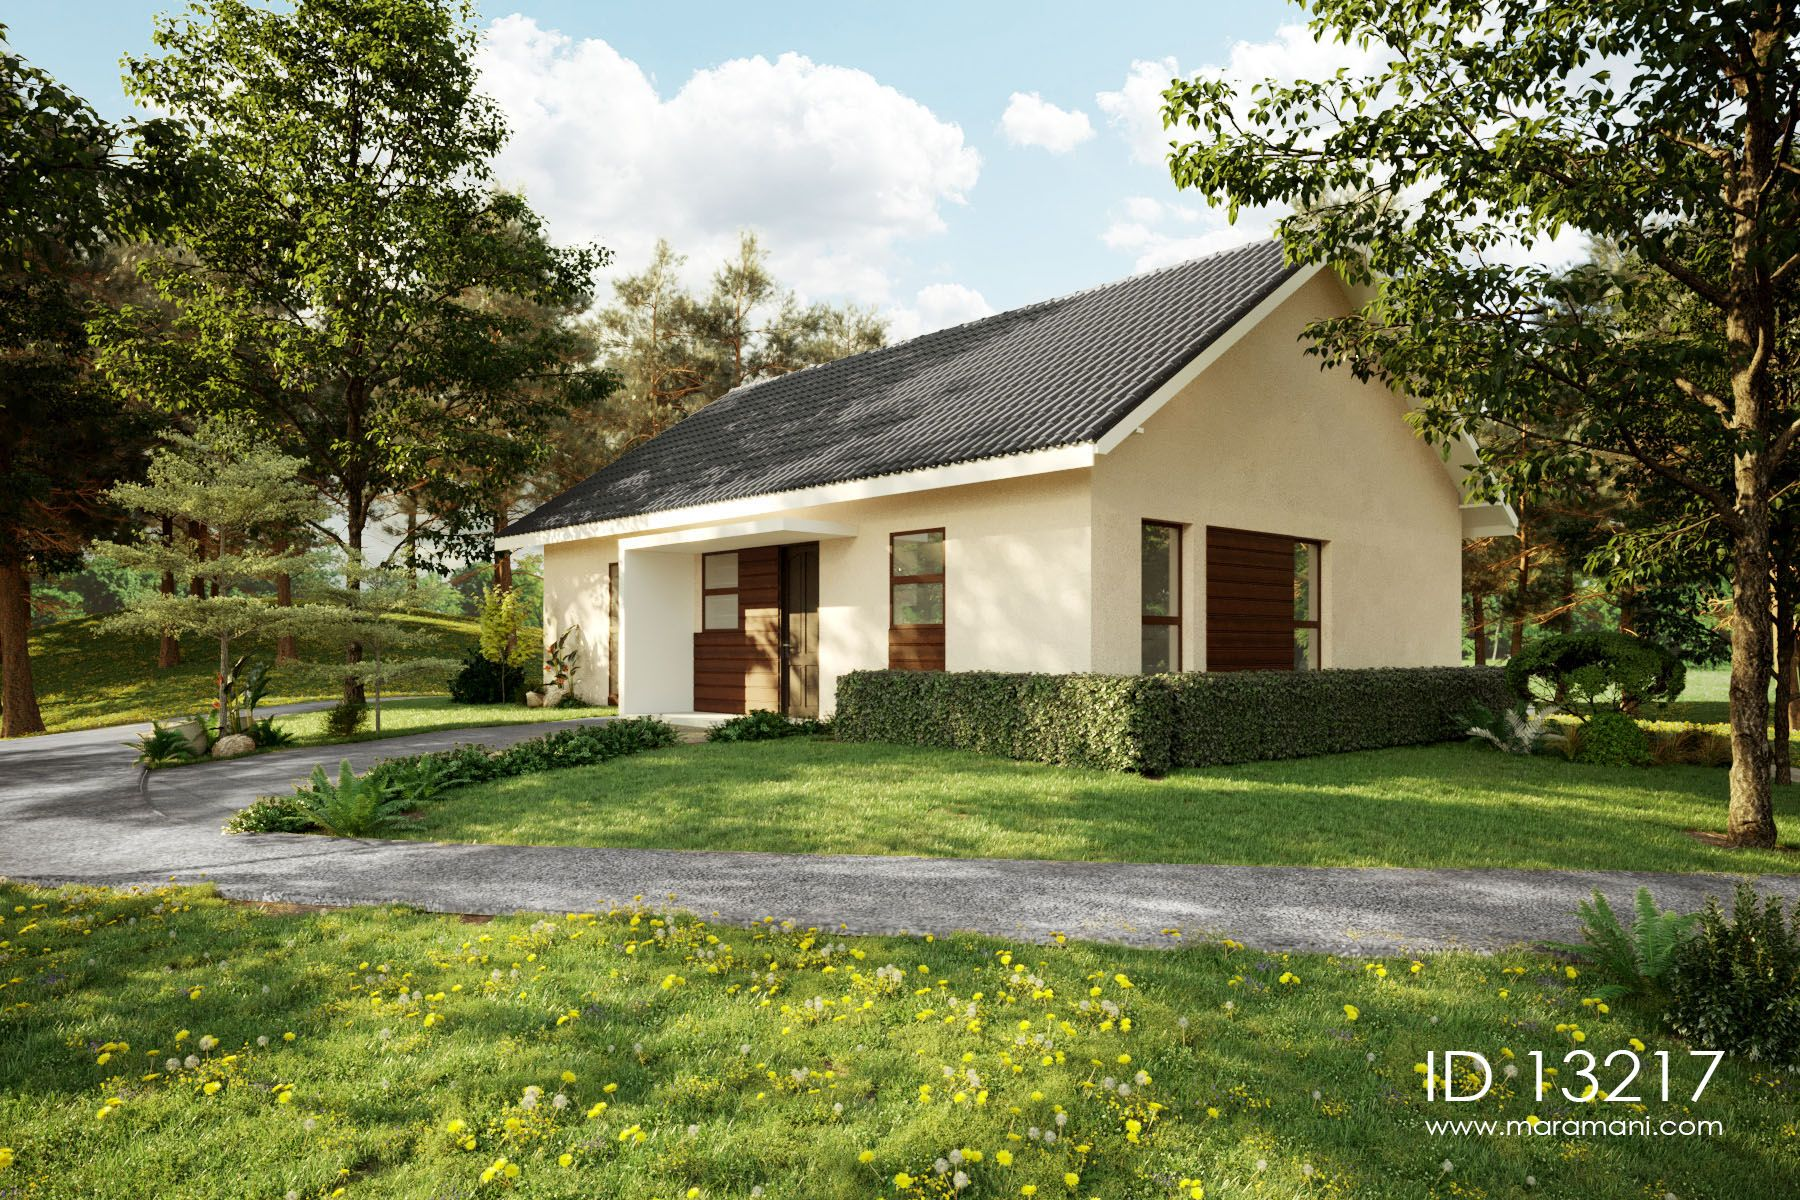 3 Bedroom House With Gable Roof Id 13217 Design By Maramani Architecture Design Architecture Luxury House Plans